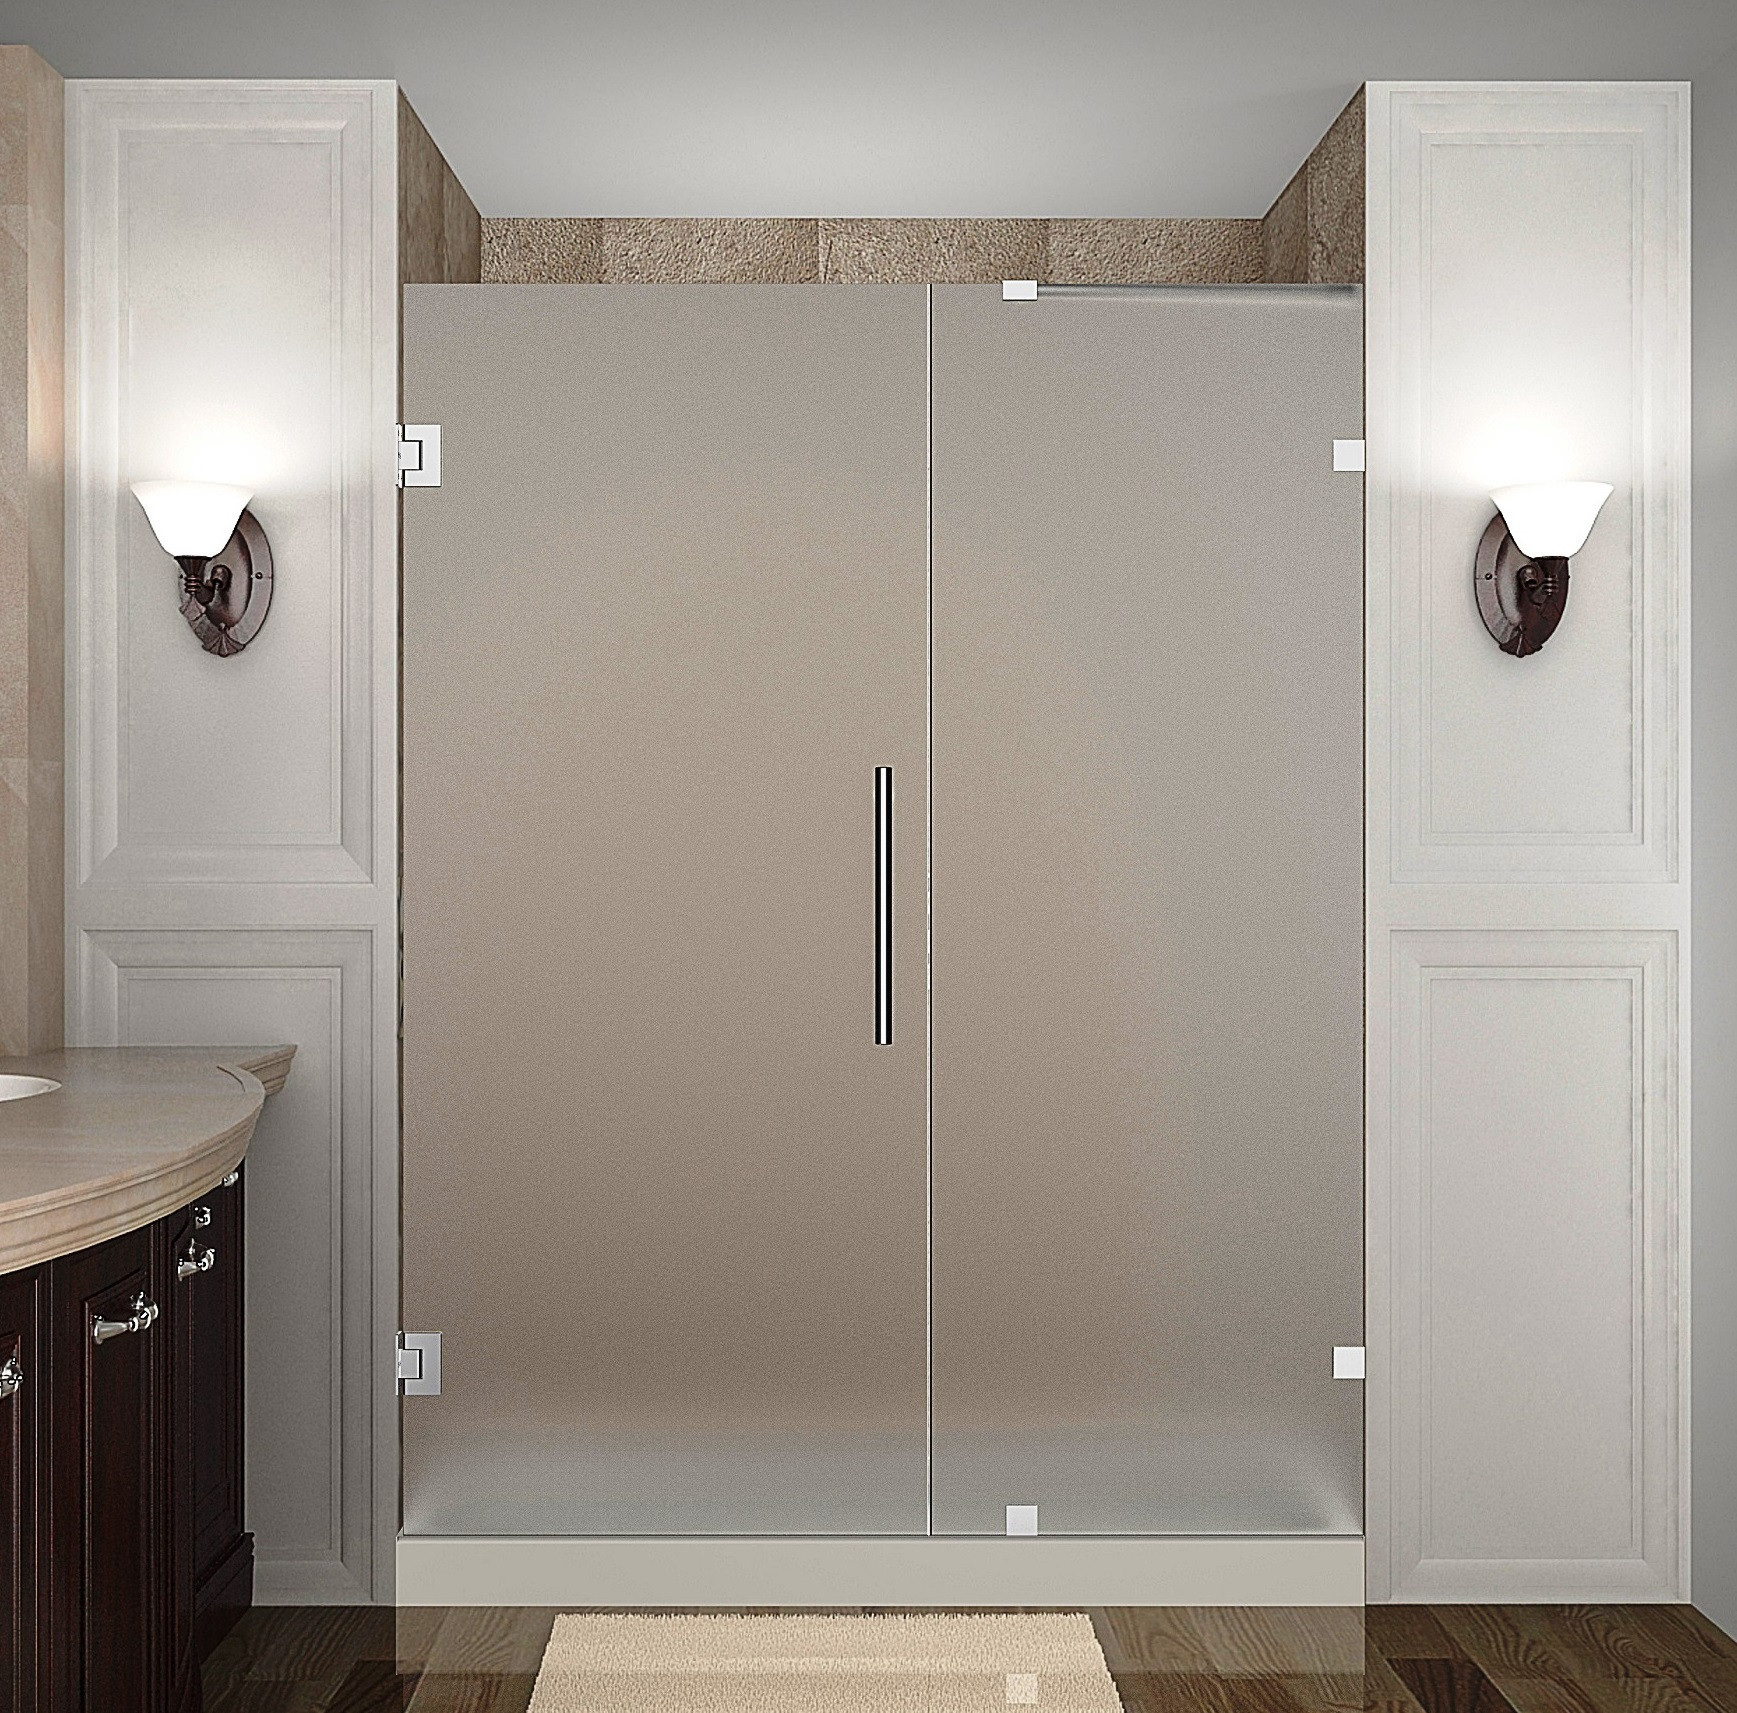 Aston Global SDR985F-CH-69-10 Completely Frameless Hinged Frosted Glass Shower Door In Chrome